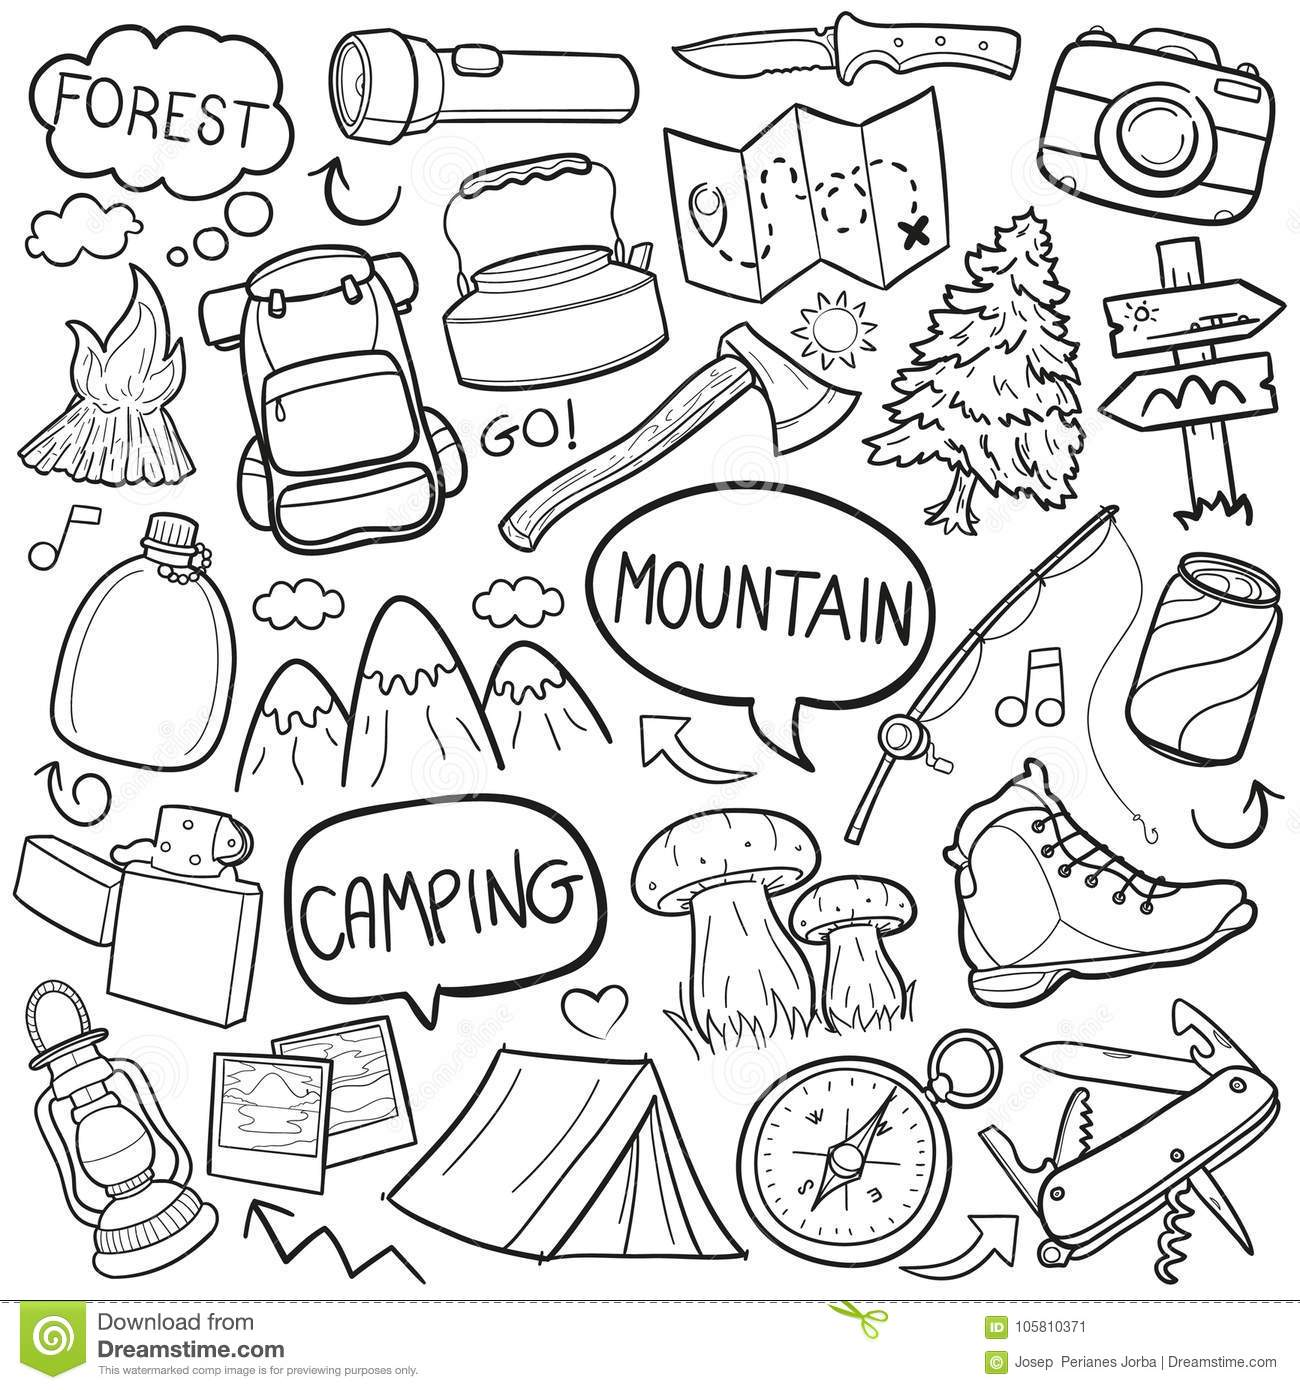 Camping Mountain Traditional Doodle Icons Sketch Hand Made